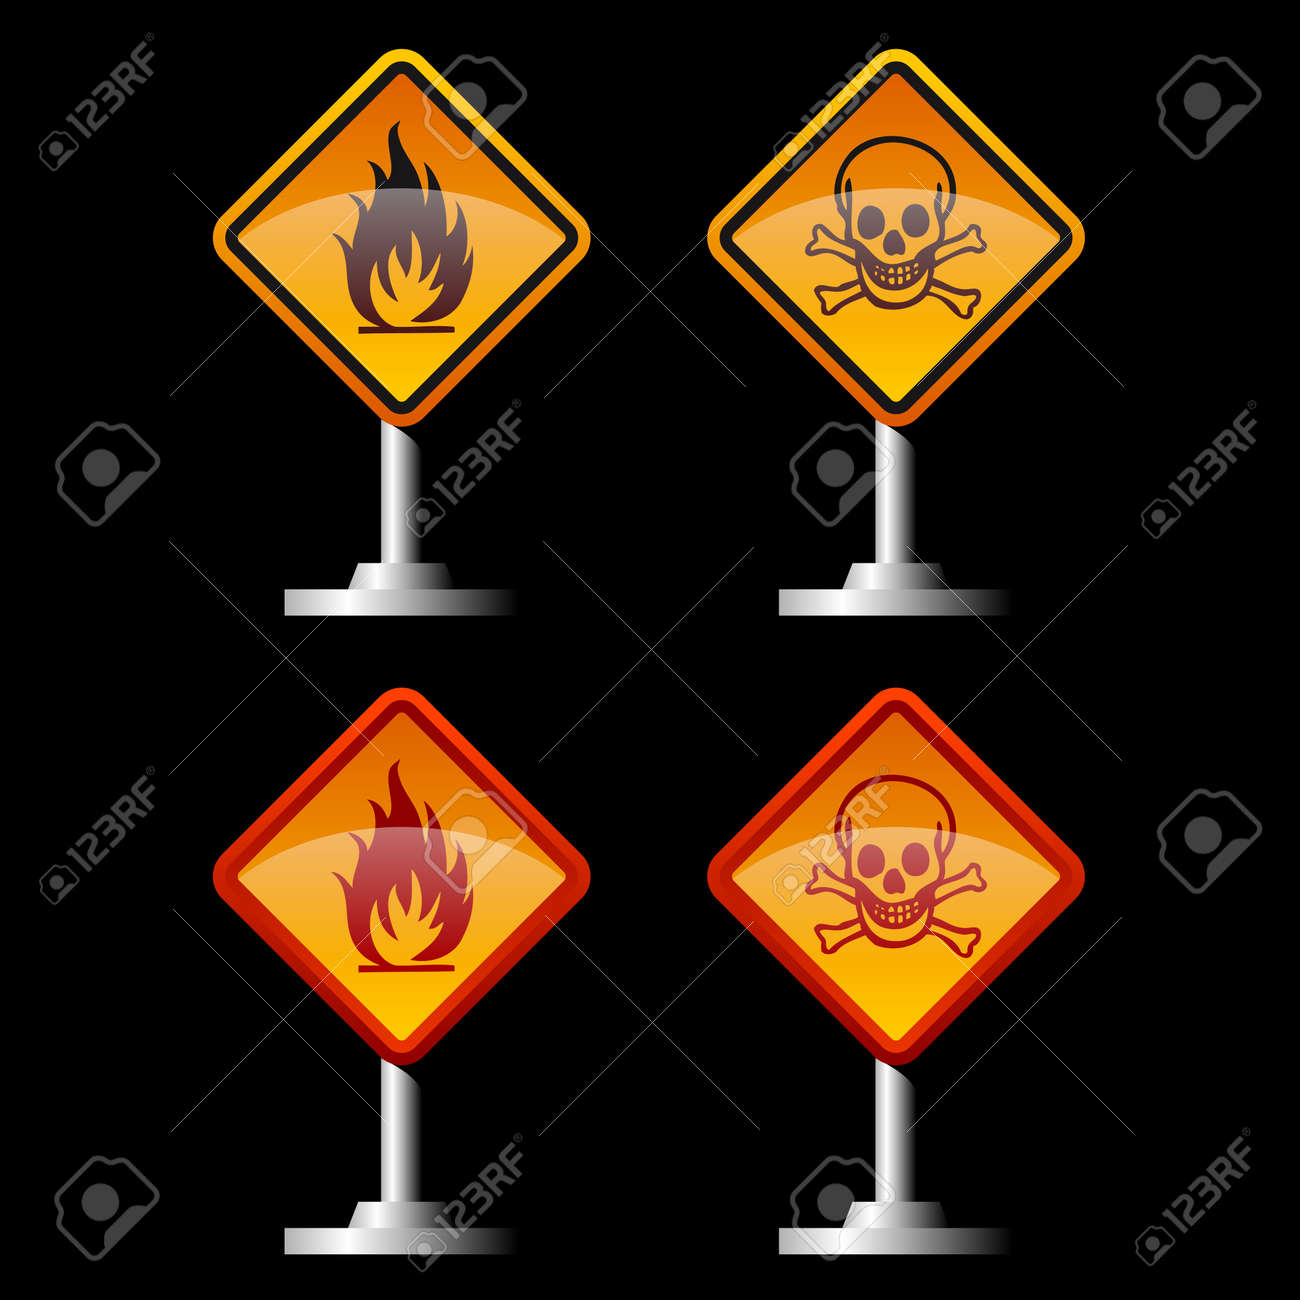 warning fire and jolly roger signs Stock Vector - 16627716